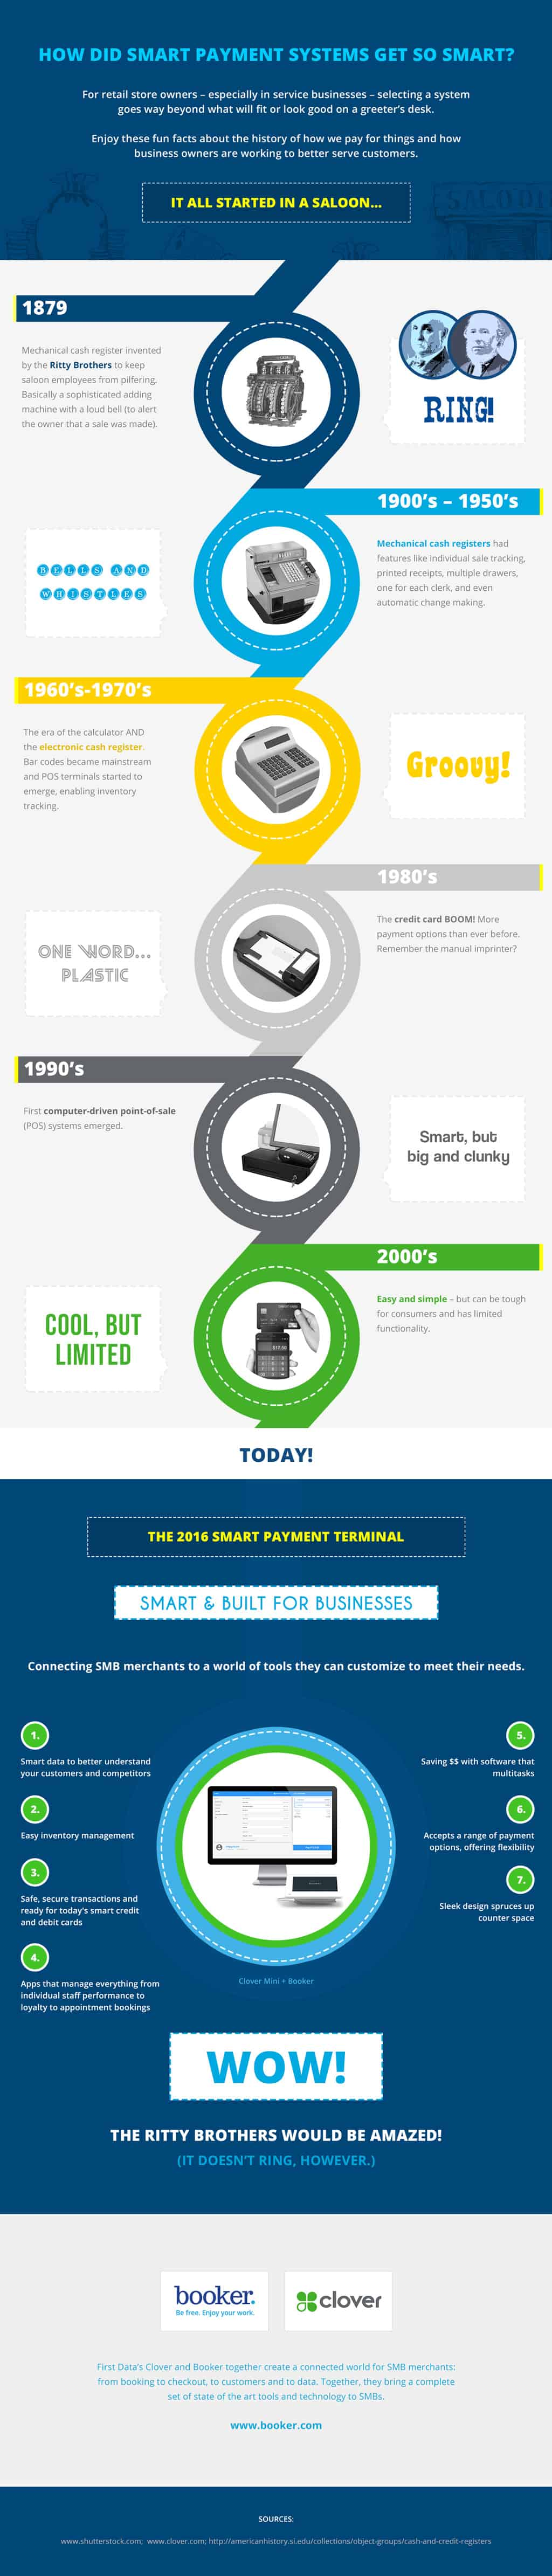 History Of Point Of Sales Systems Daily Infographic